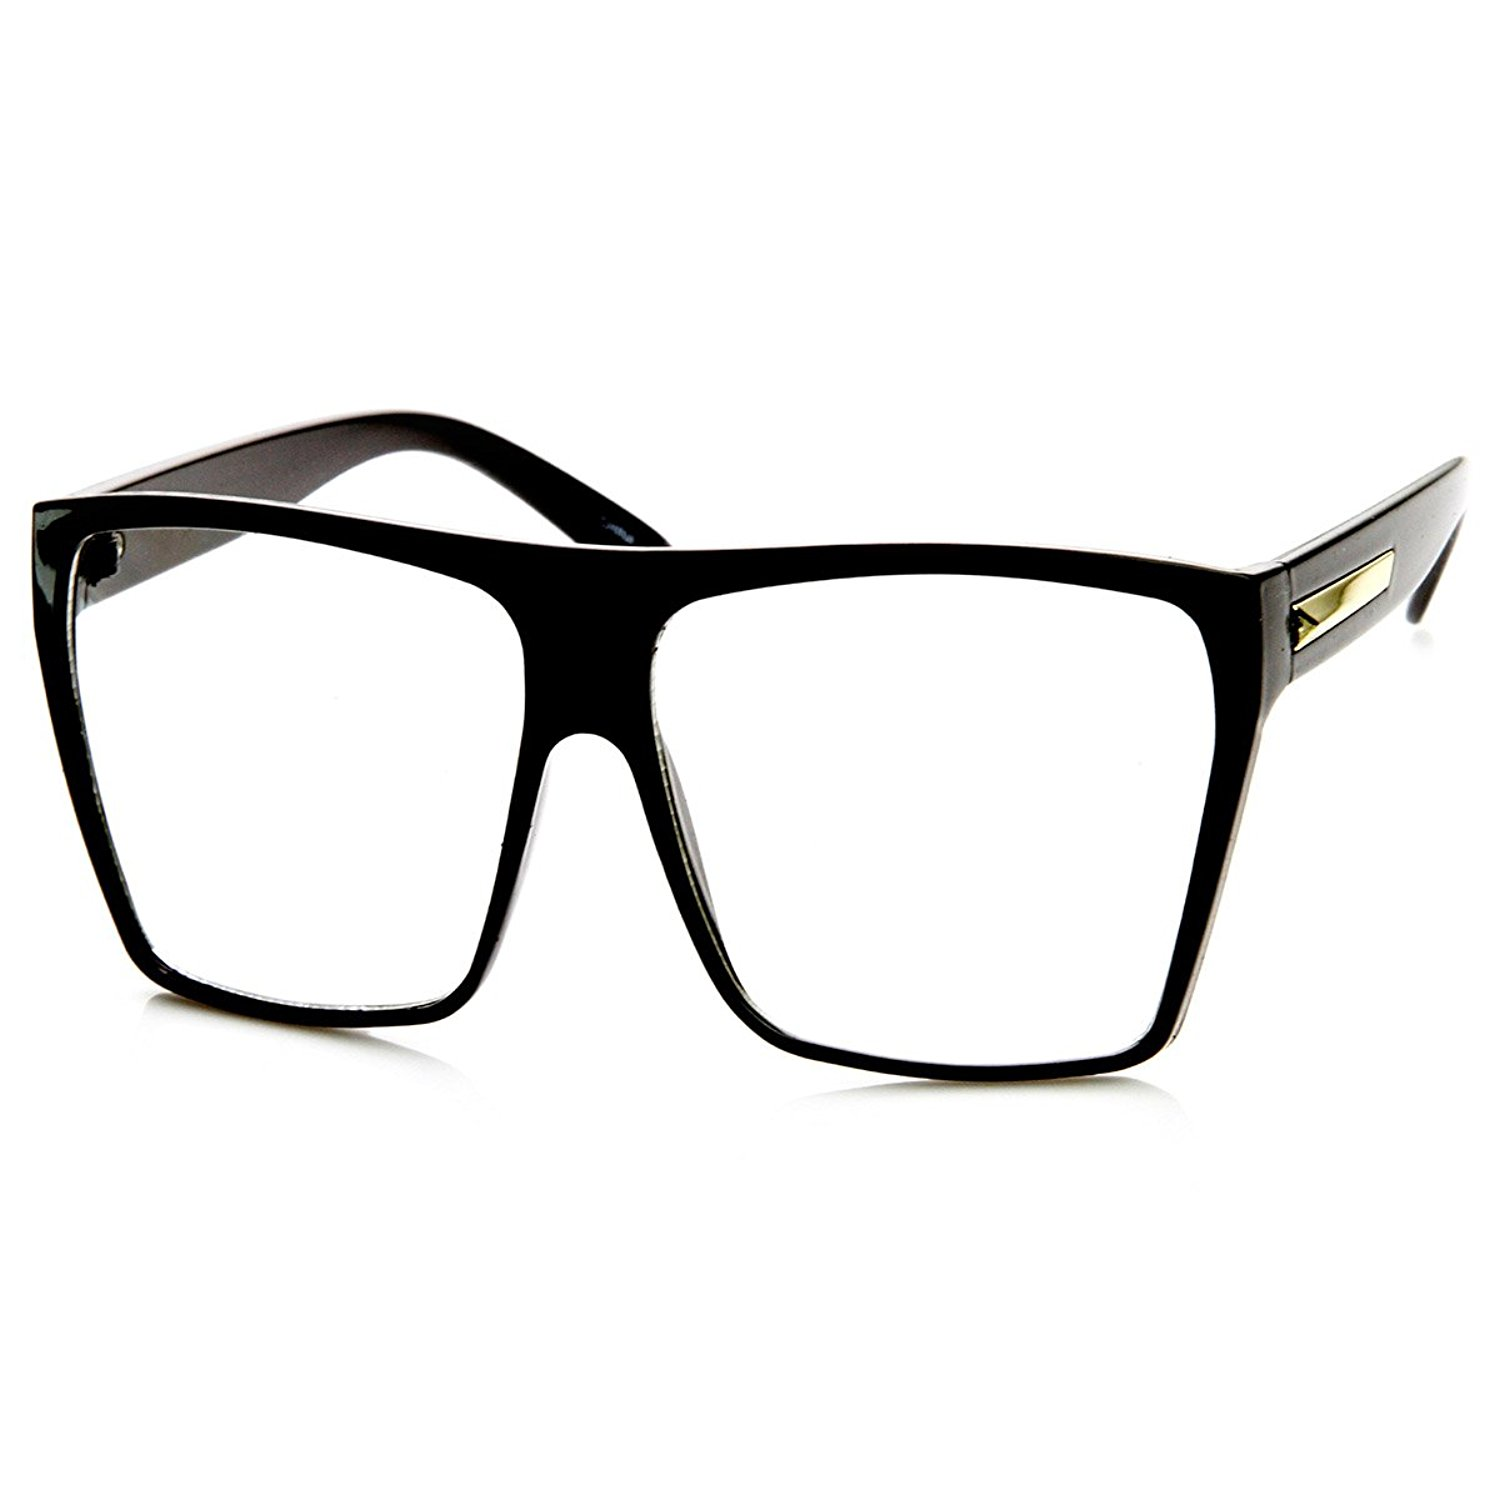 Cheap Top Eyeglasses Frames, find Top Eyeglasses Frames deals on ...